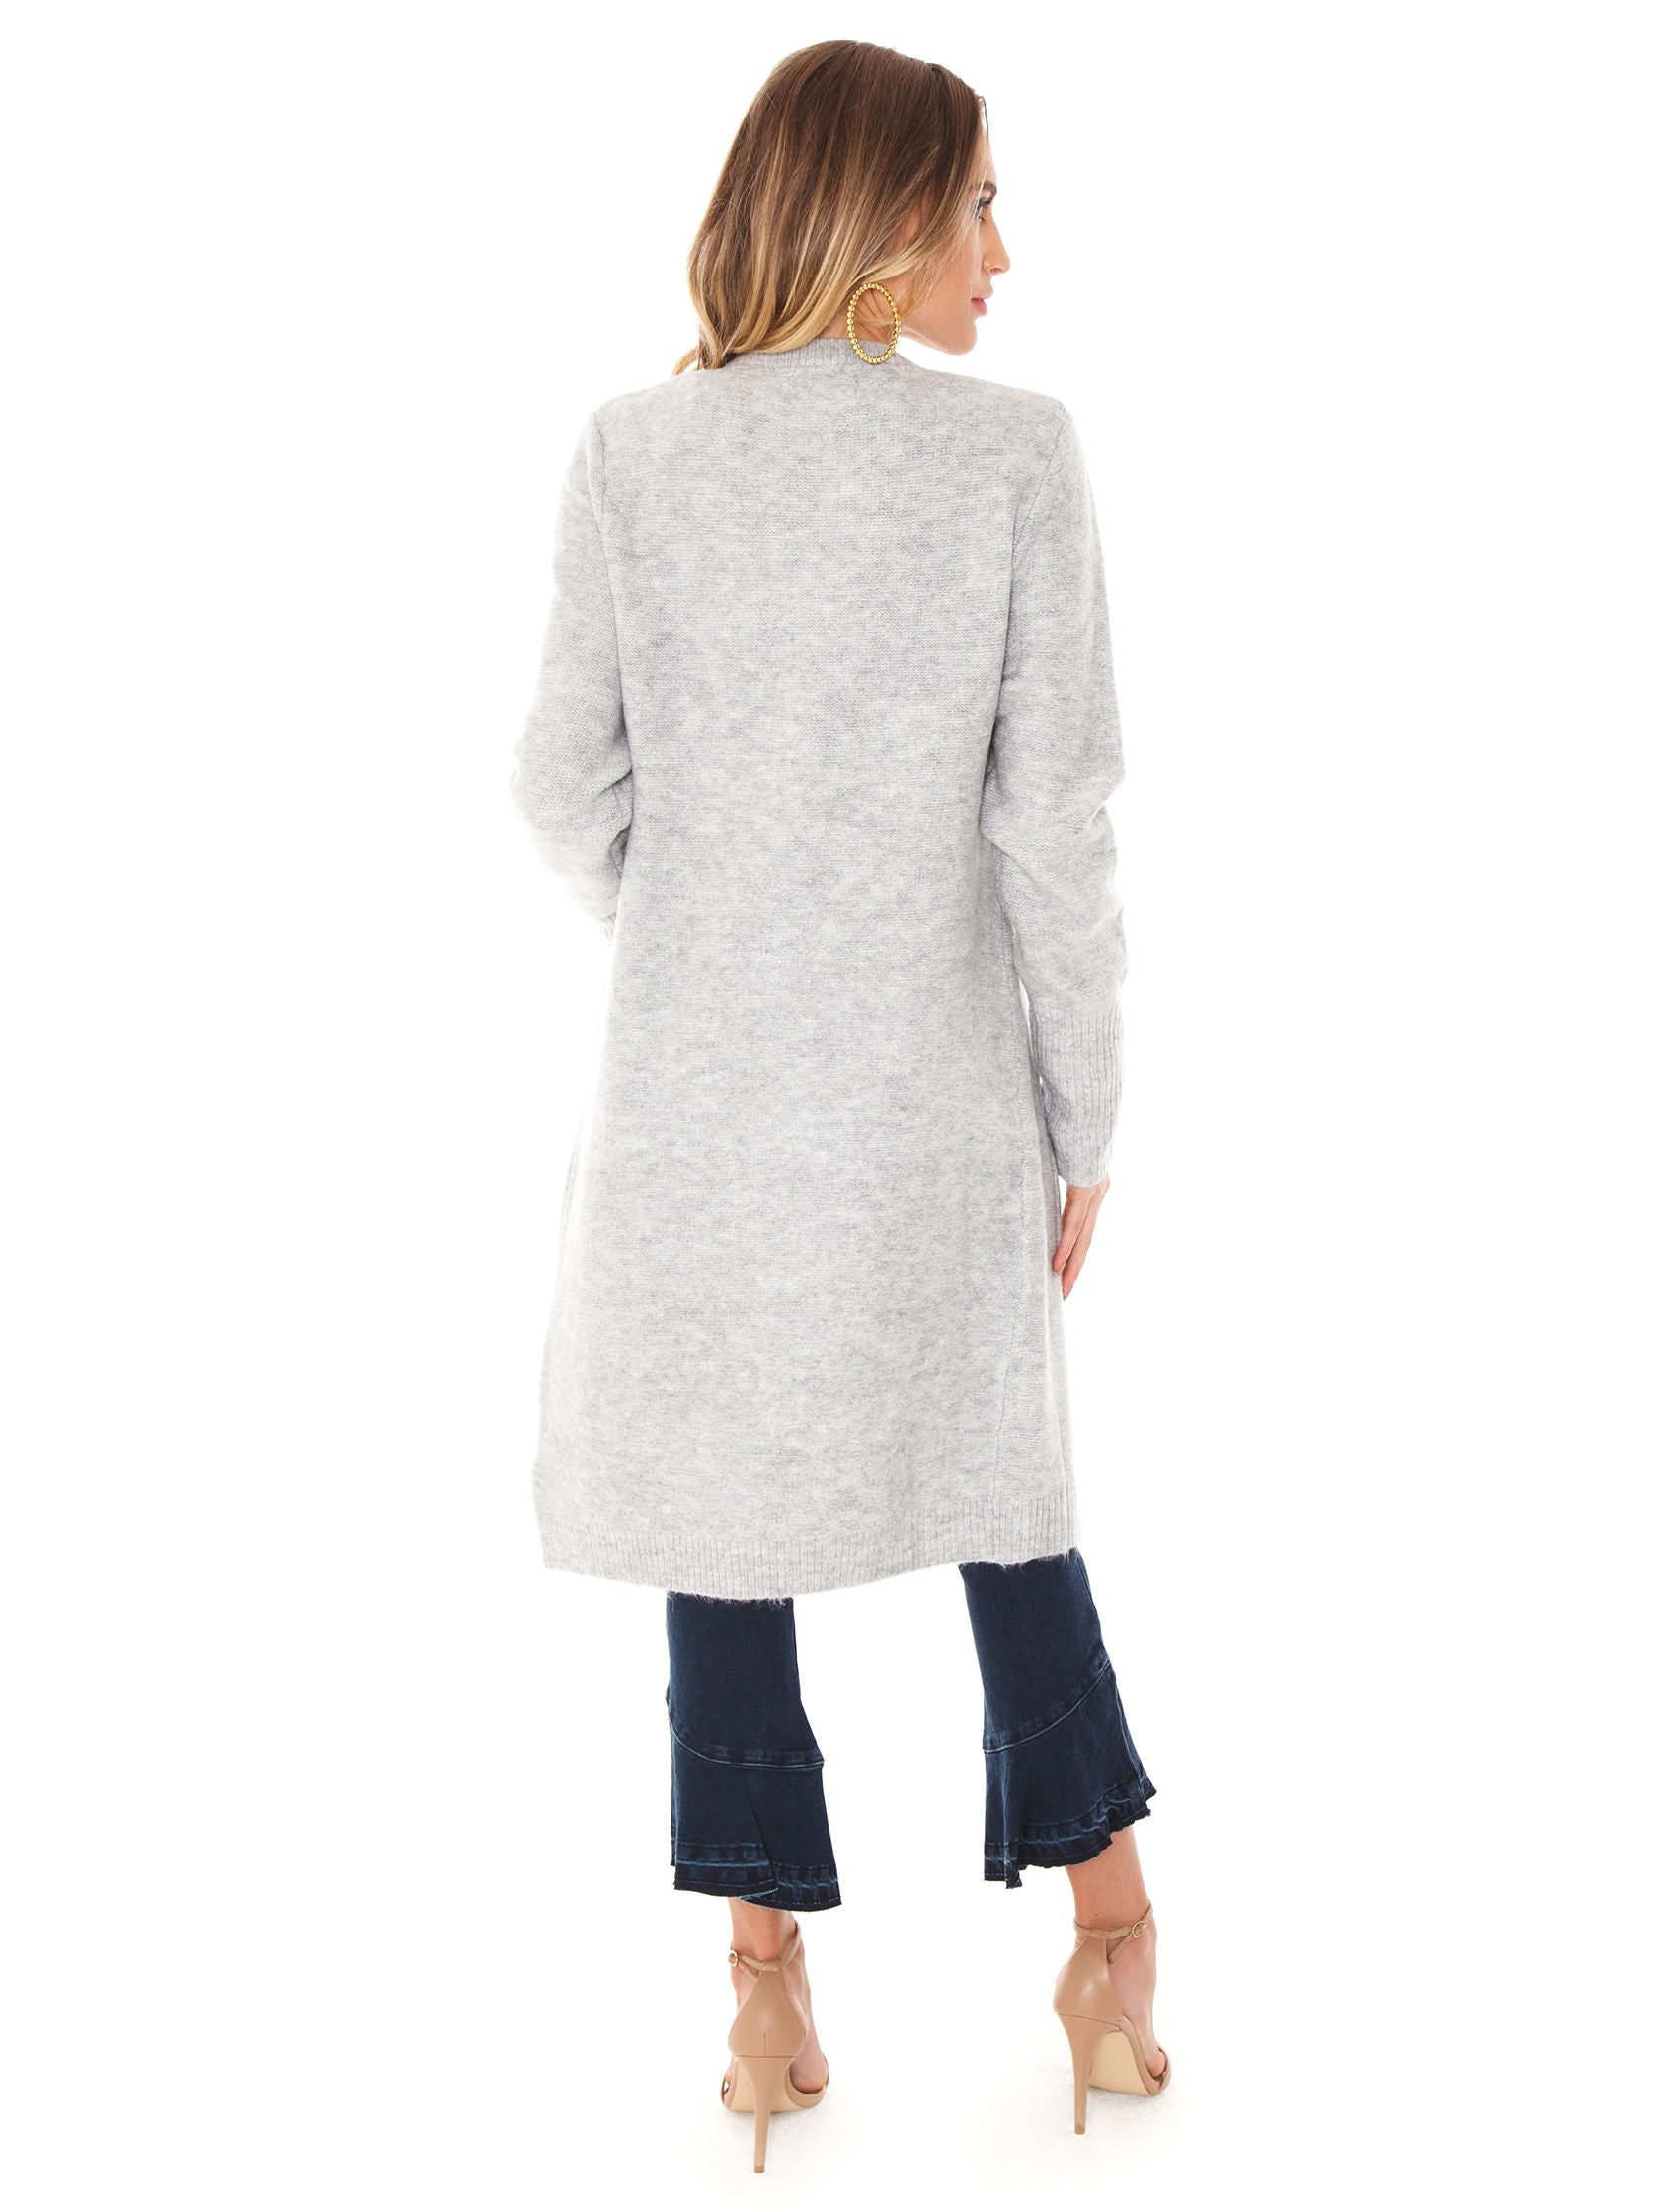 Women wearing a cardigan rental from MINKPINK called Saturdays Longline Cardi